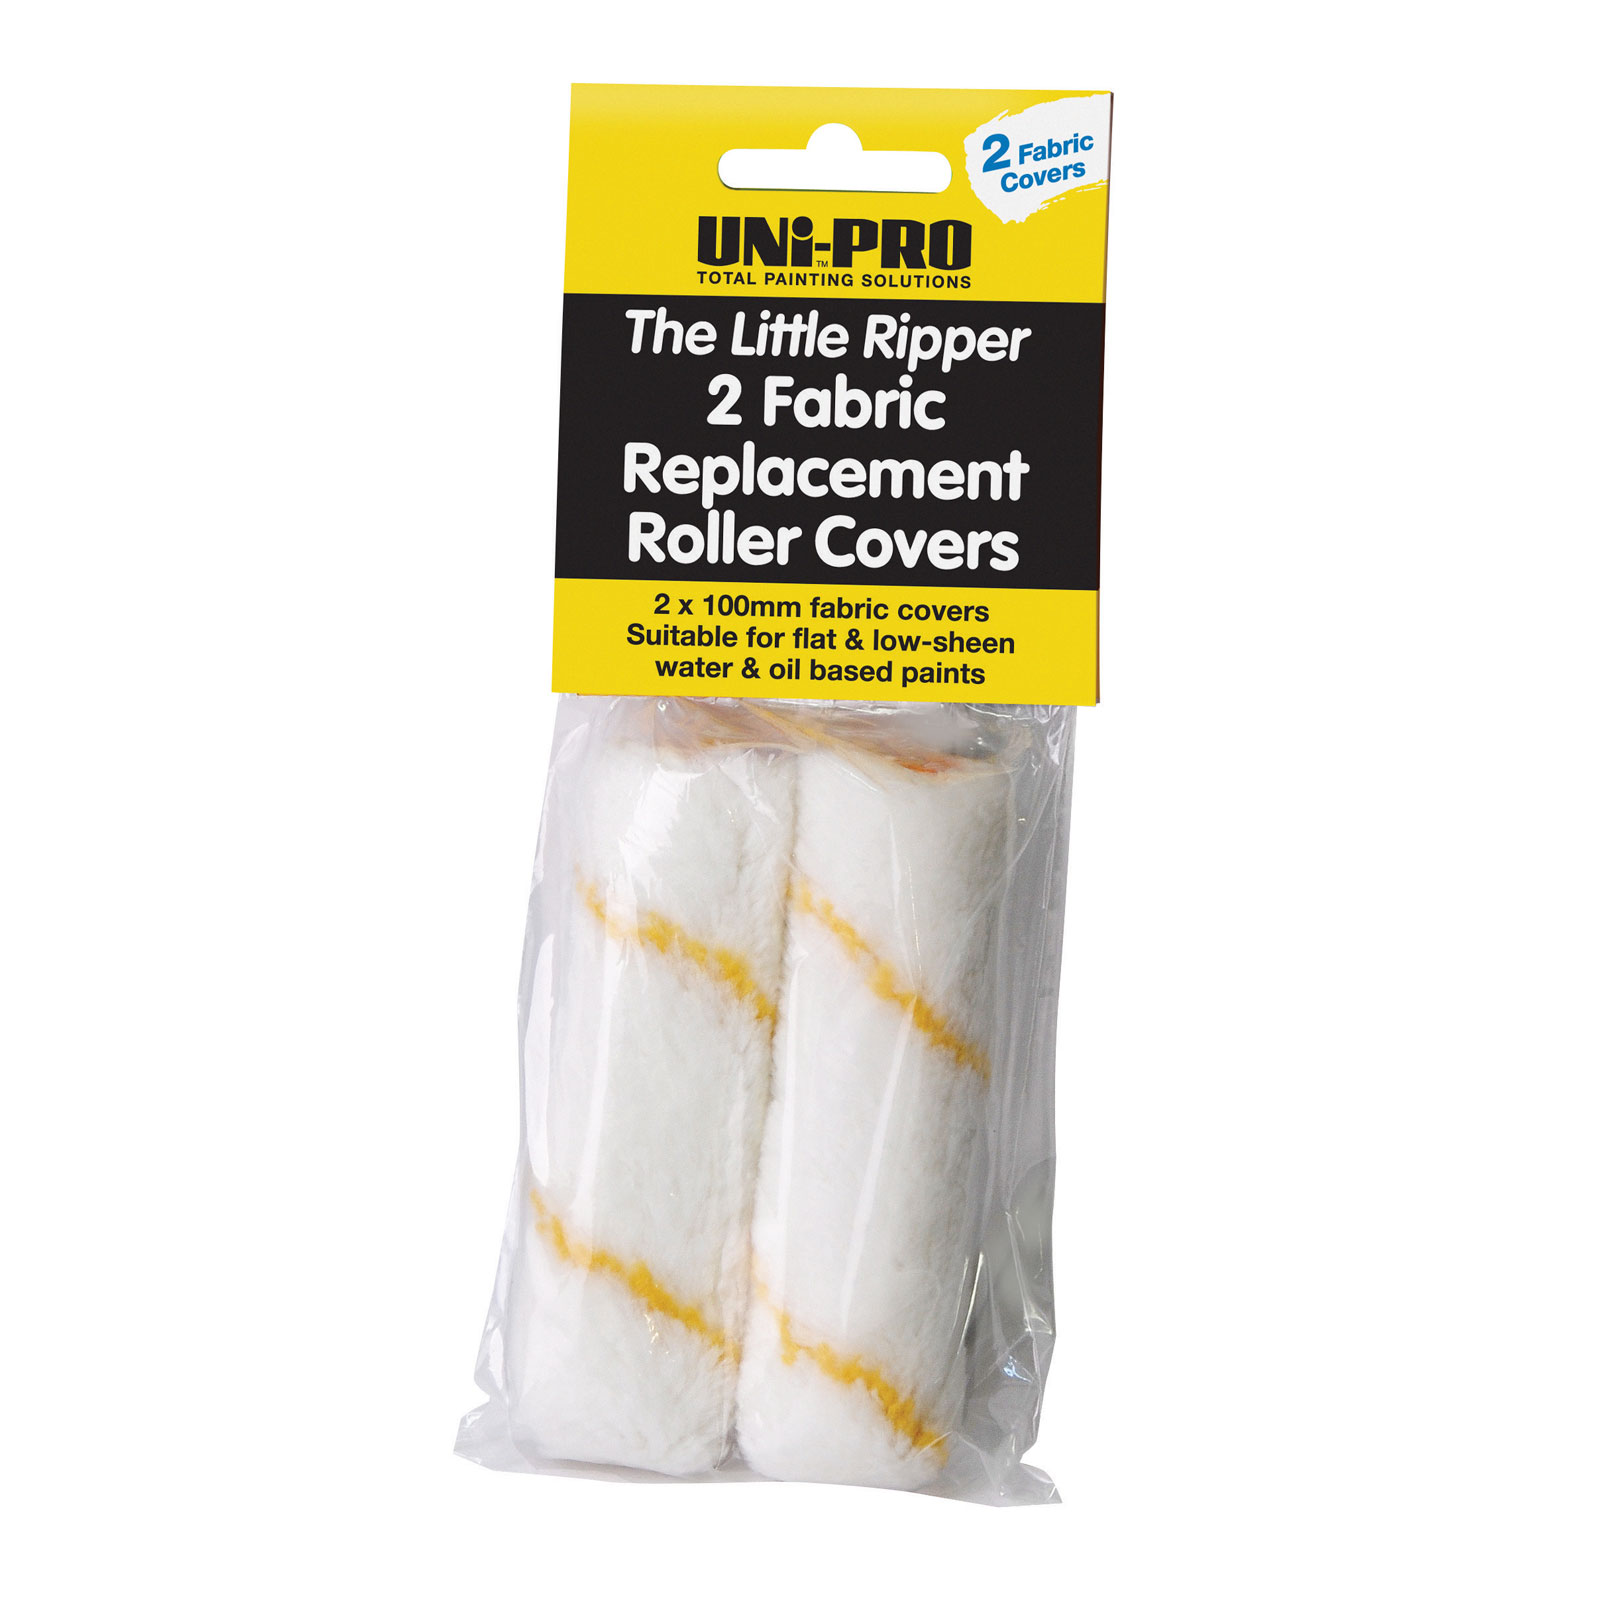 "UNi-PRO ""Little Ripper"" Fabric Covers - 2 Pack"